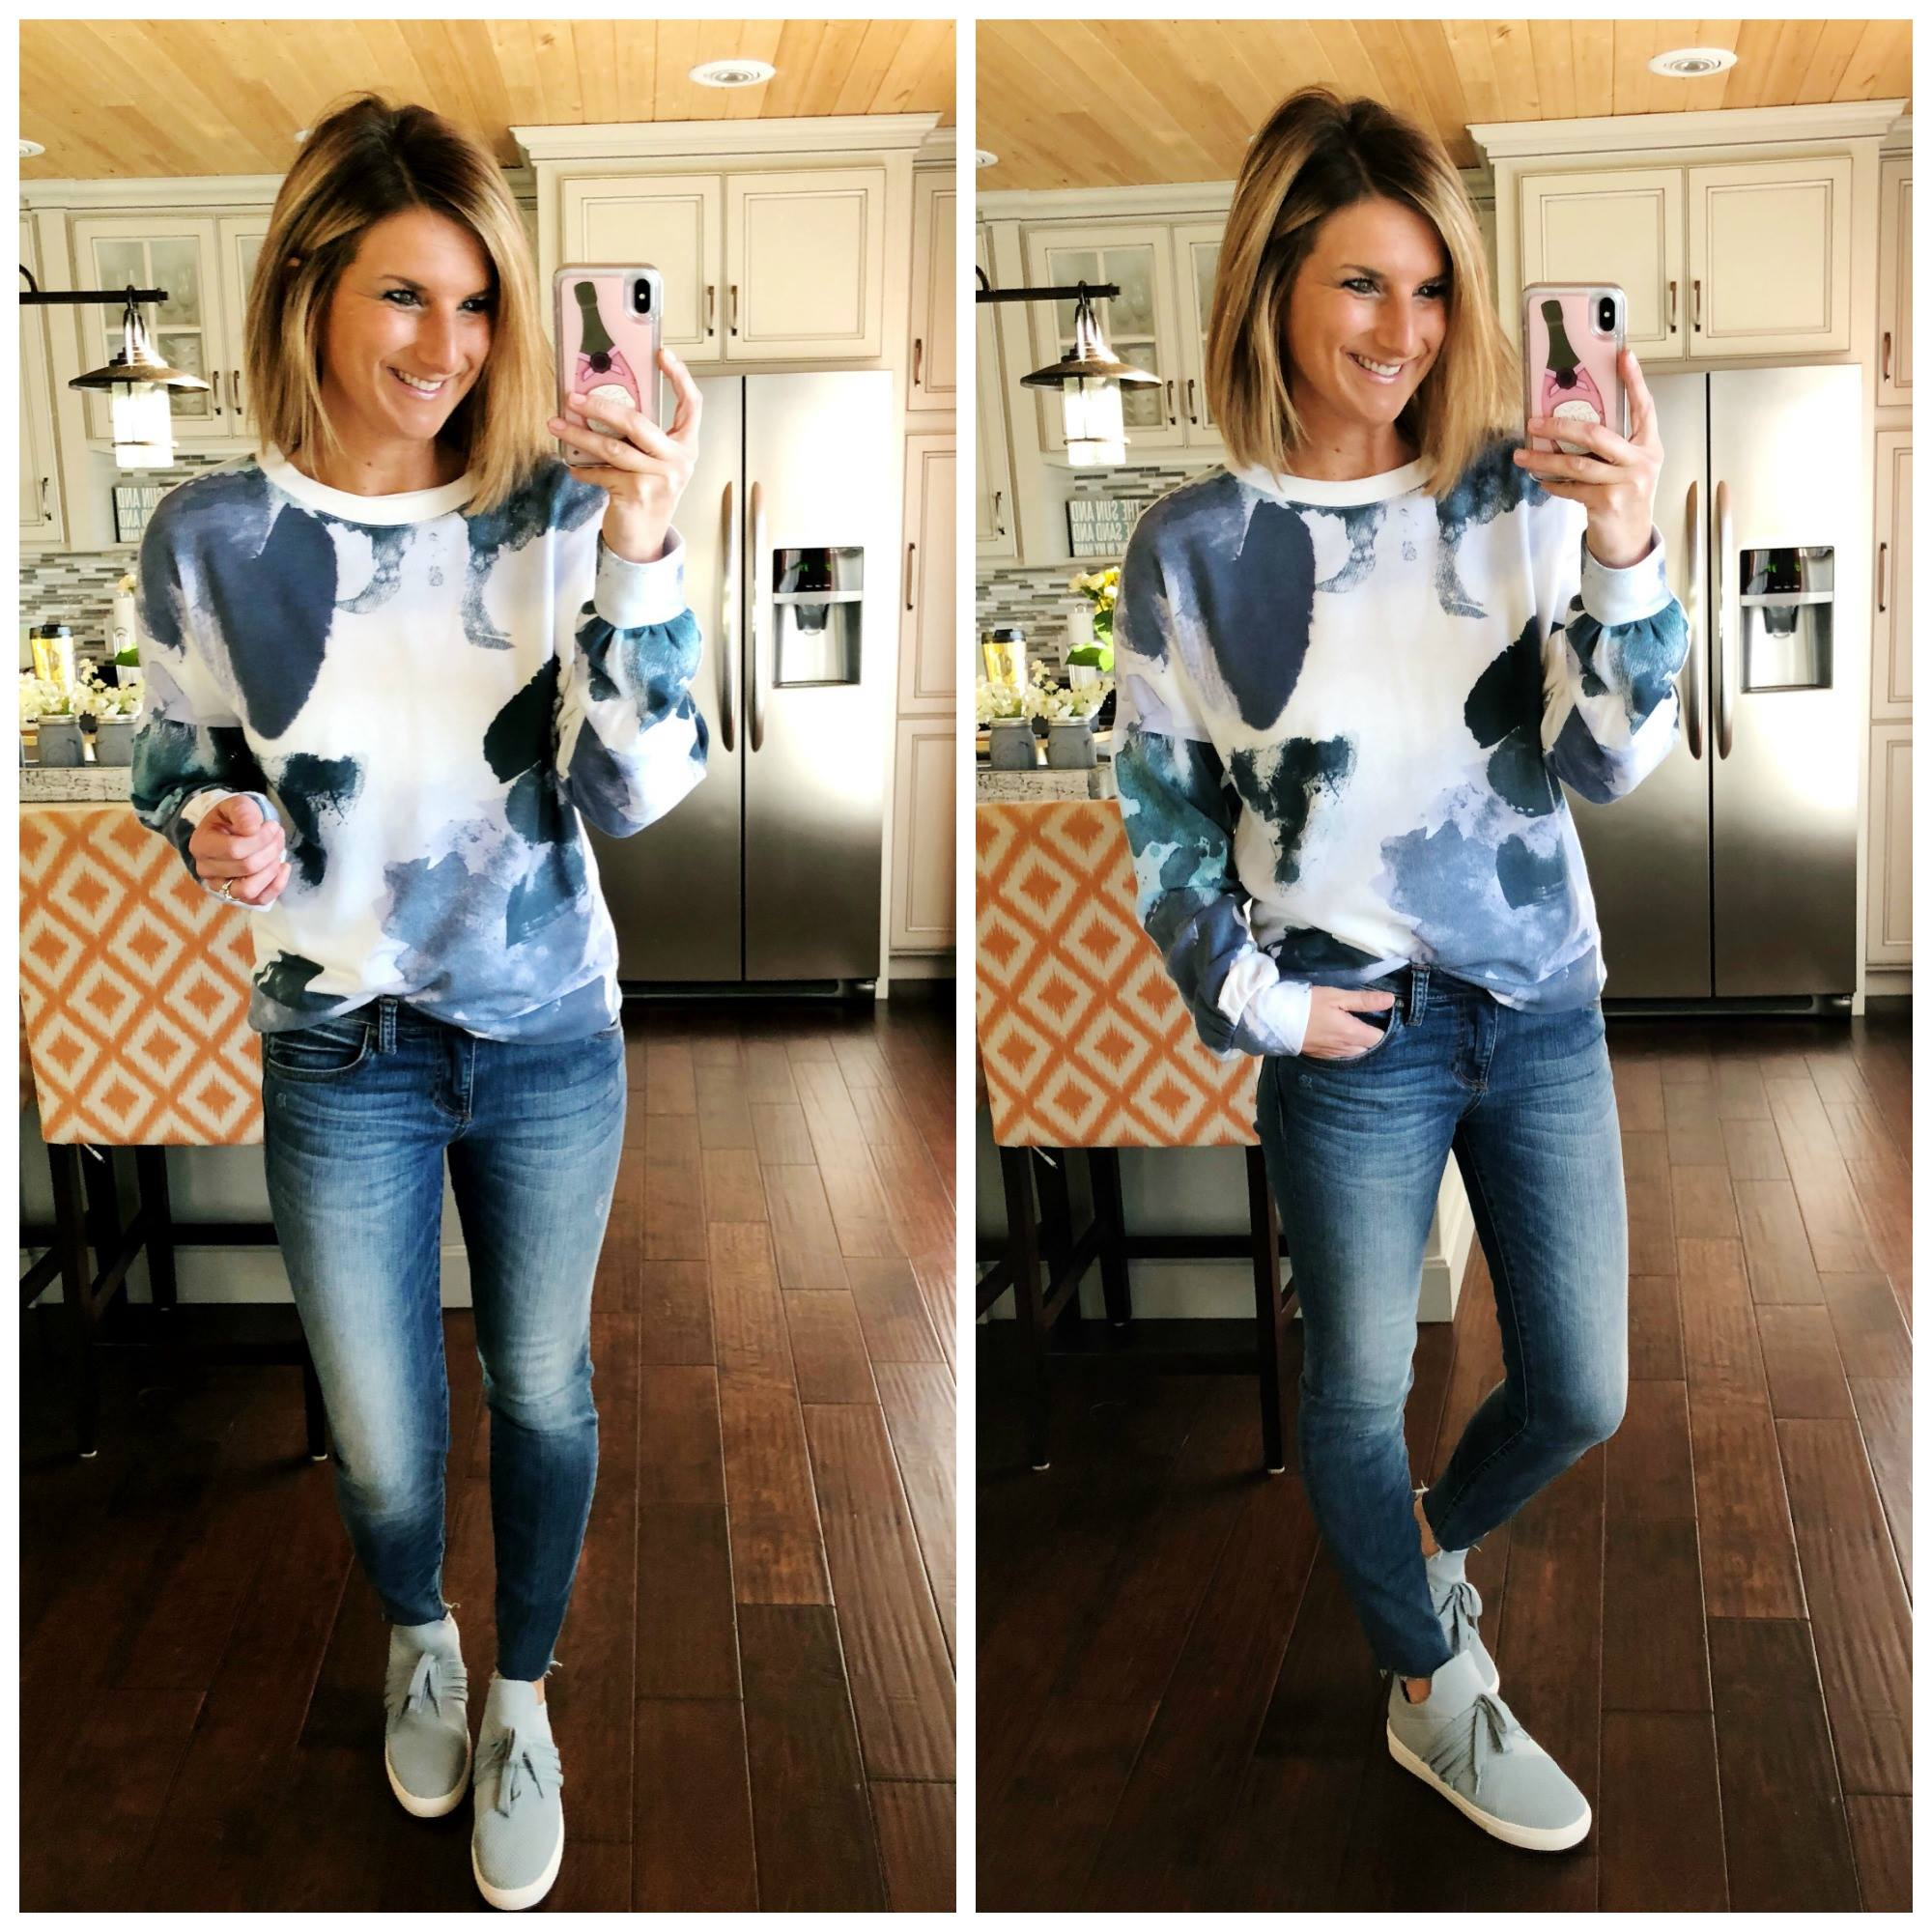 Watercolor Sweatshirt + Light Wash Jeggings + Light Blue Sneakers // Casual Spring Outfit